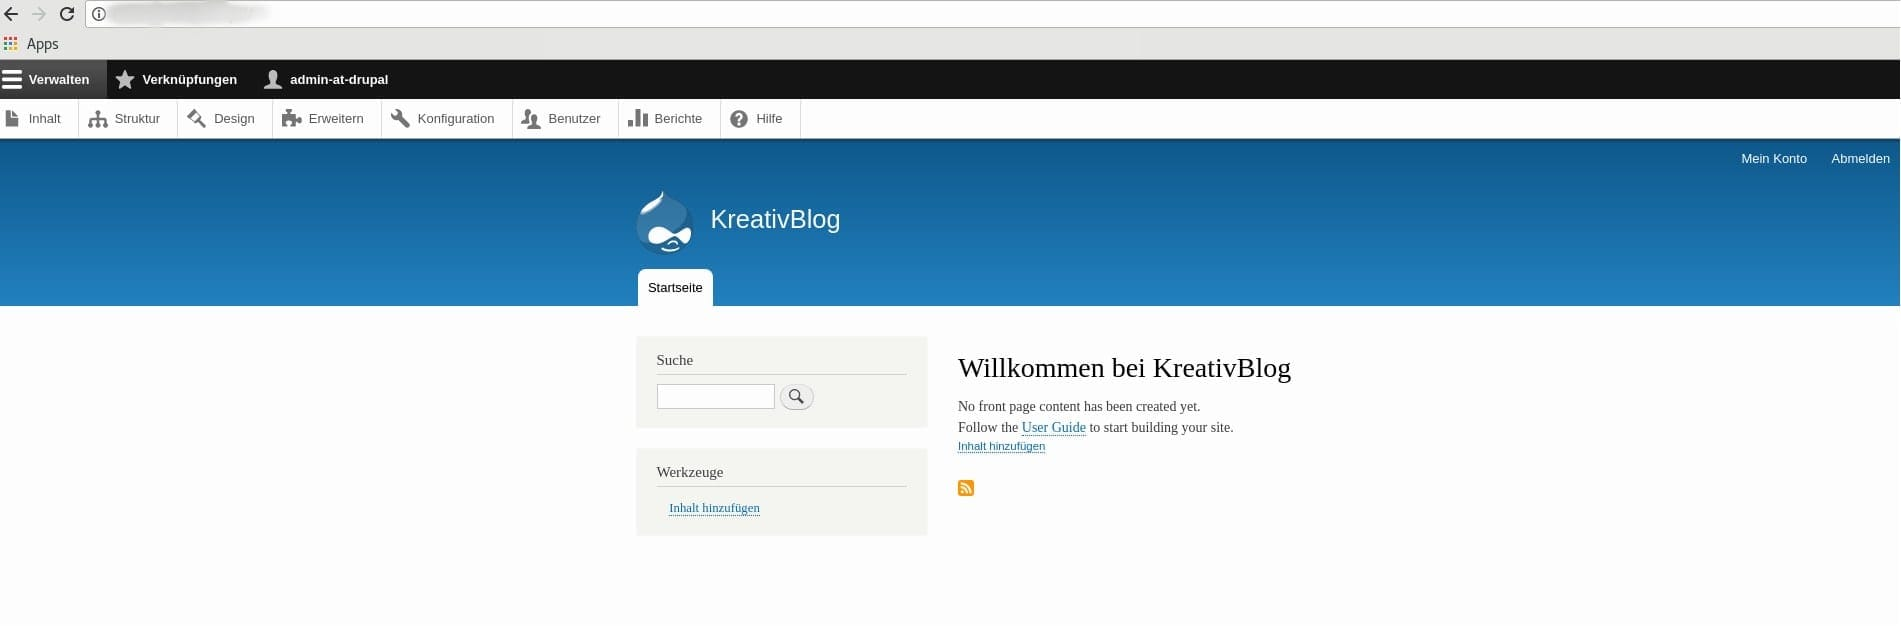 Web-Interface von Drupal